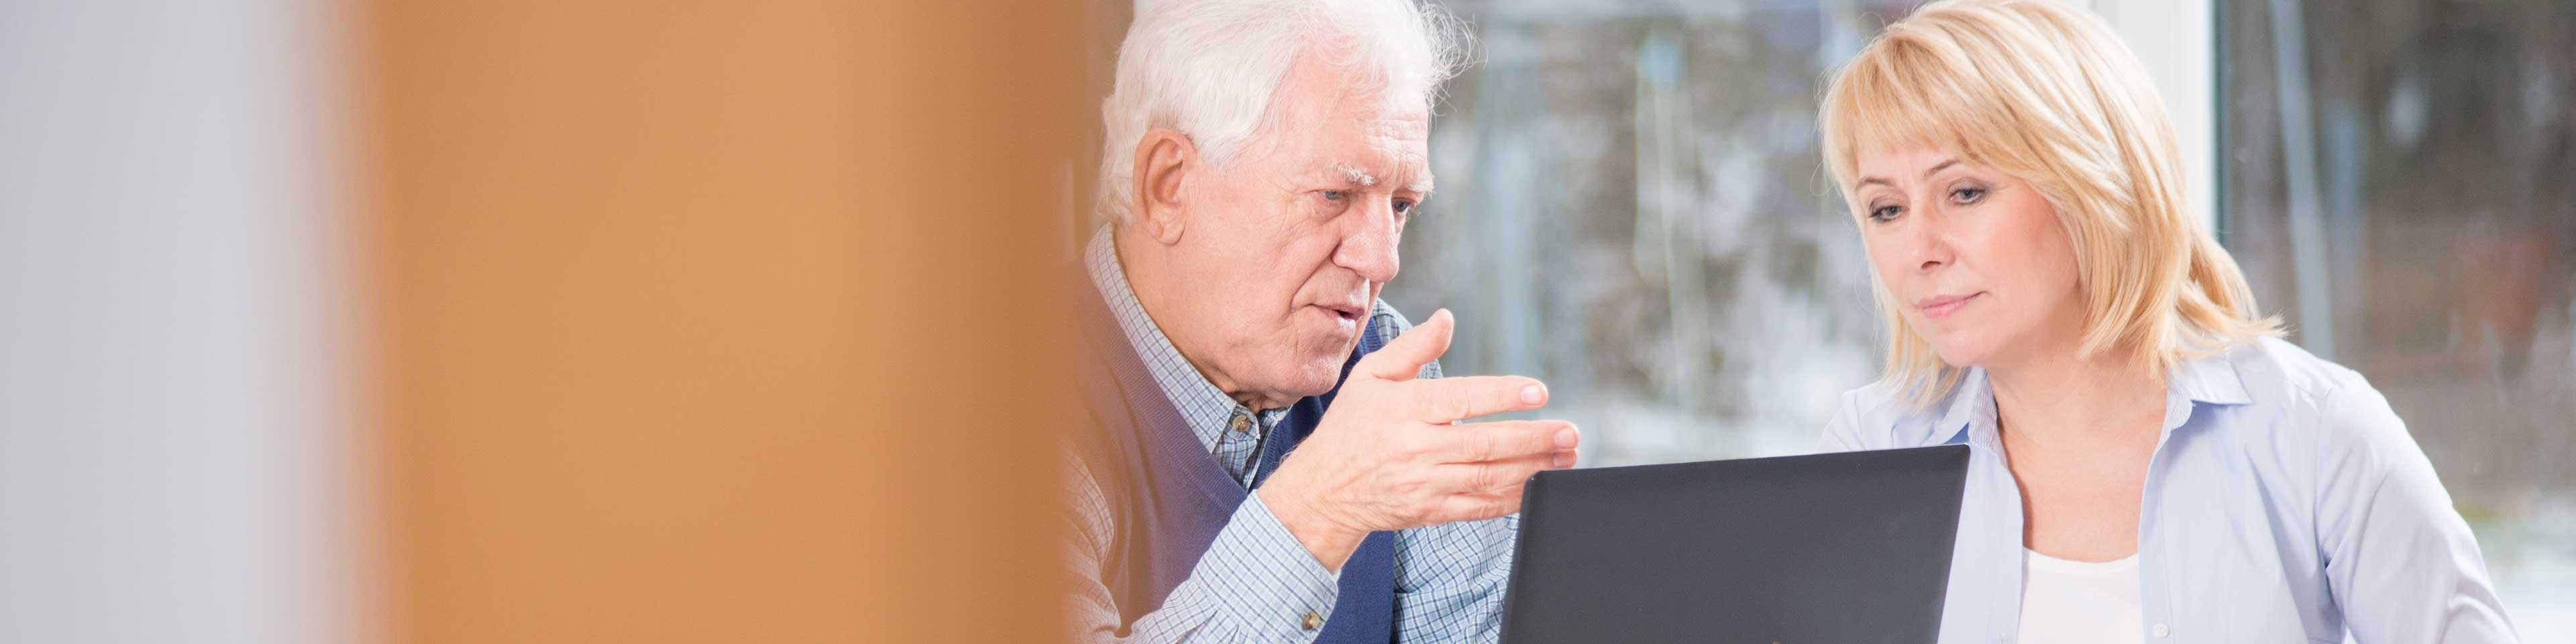 Man and woman looking at laptop and discussing